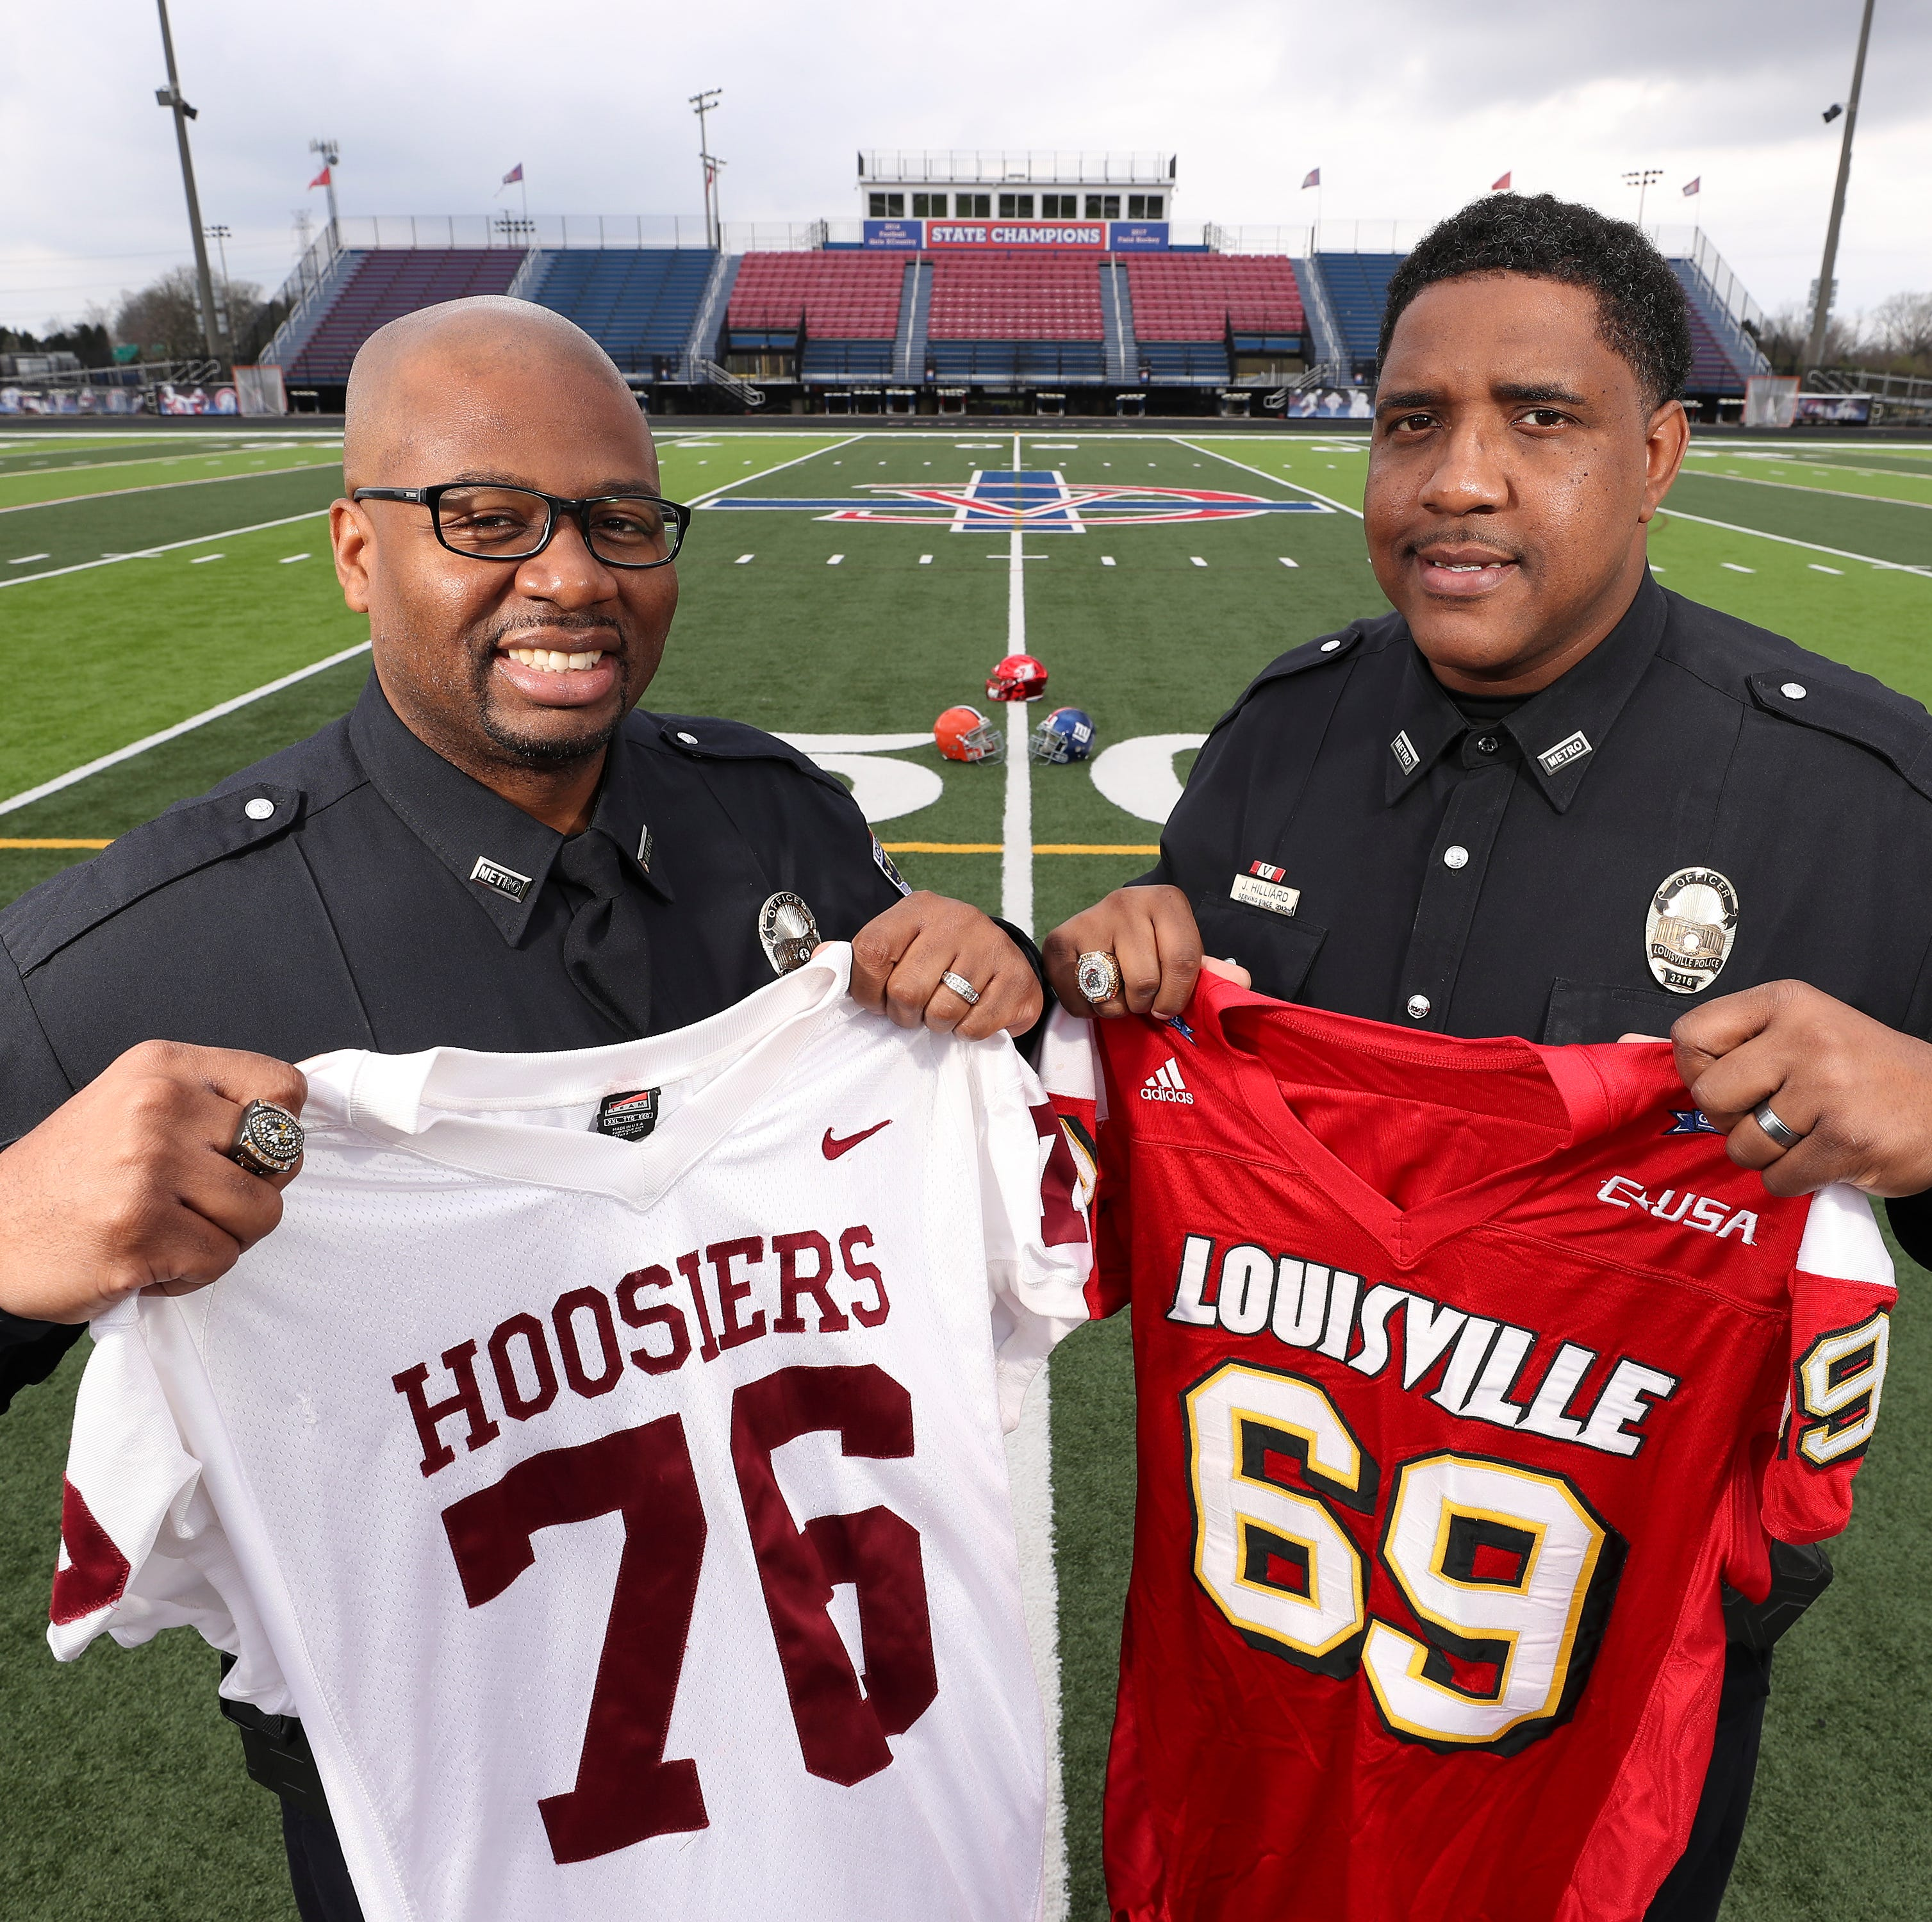 From the NFL to LMPD, this duo brings a different perspective to the force